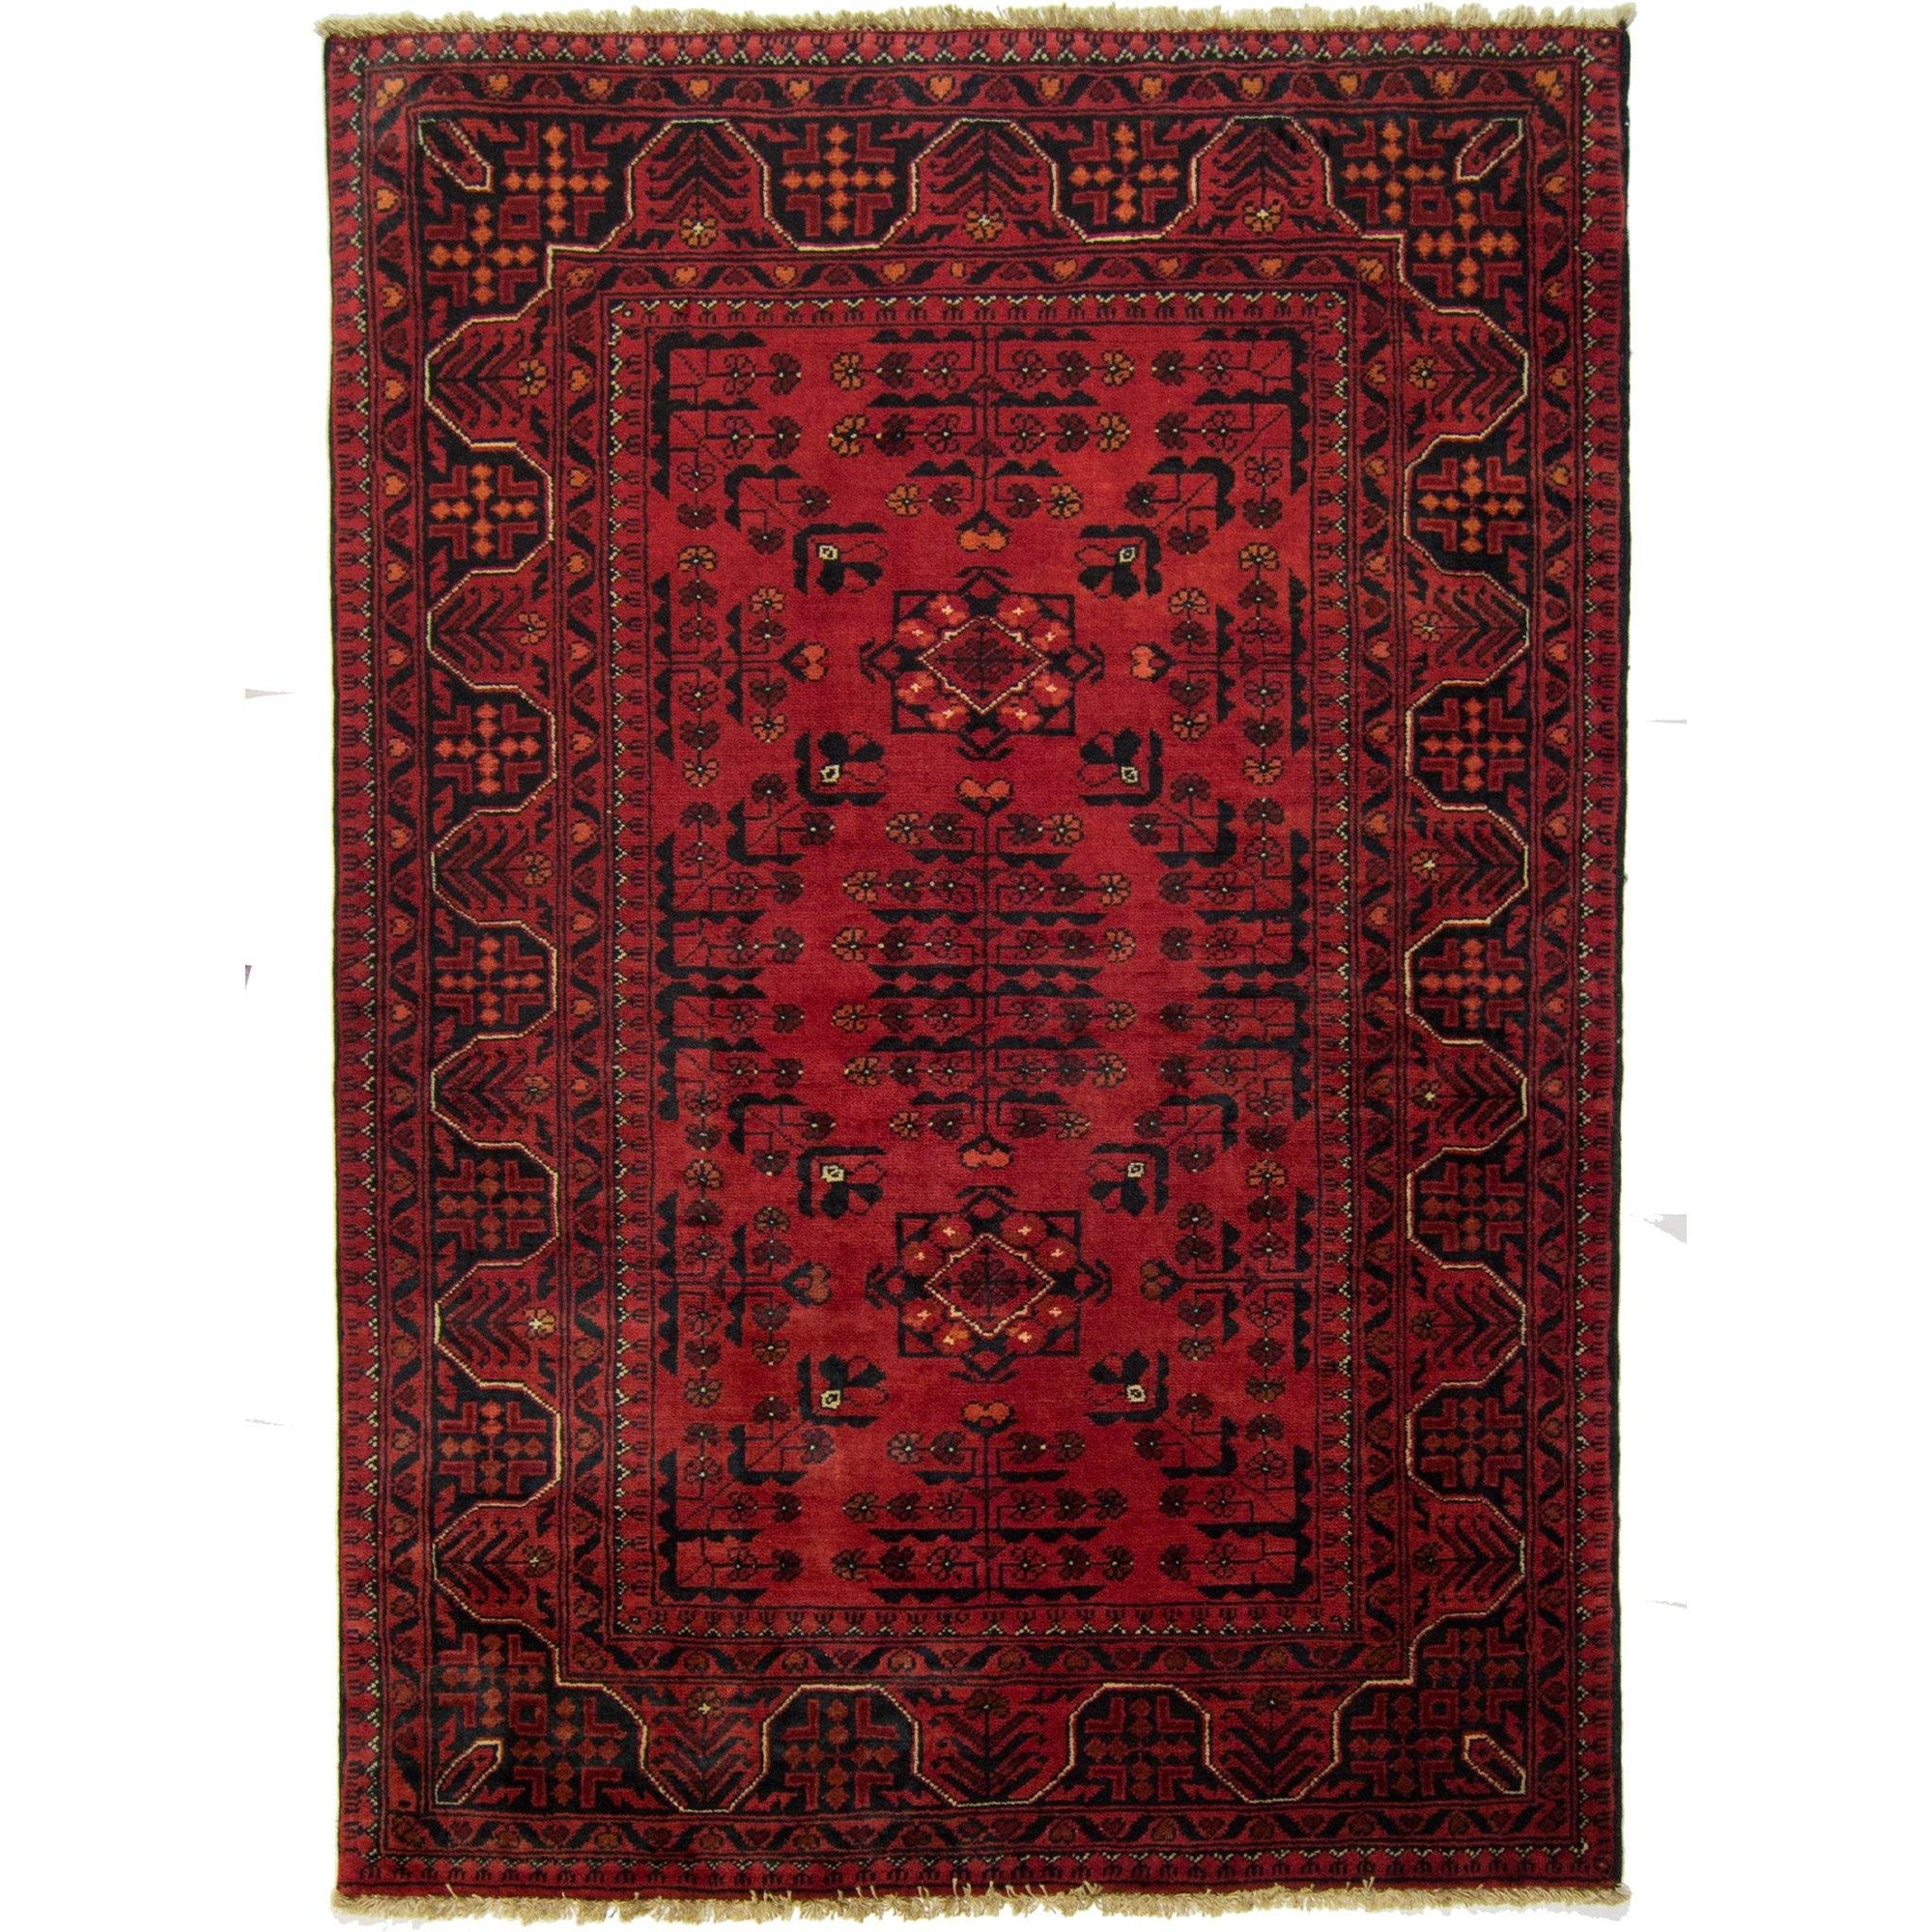 Tribal Afghan 100% Wool Hand-knotted Khal Mohammadi Rug 99 cm x 146 cm Persian-Rug | House-of-Haghi | NewMarket | Auckland | NZ | Handmade Persian Rugs | Hand Knotted Persian Rugs